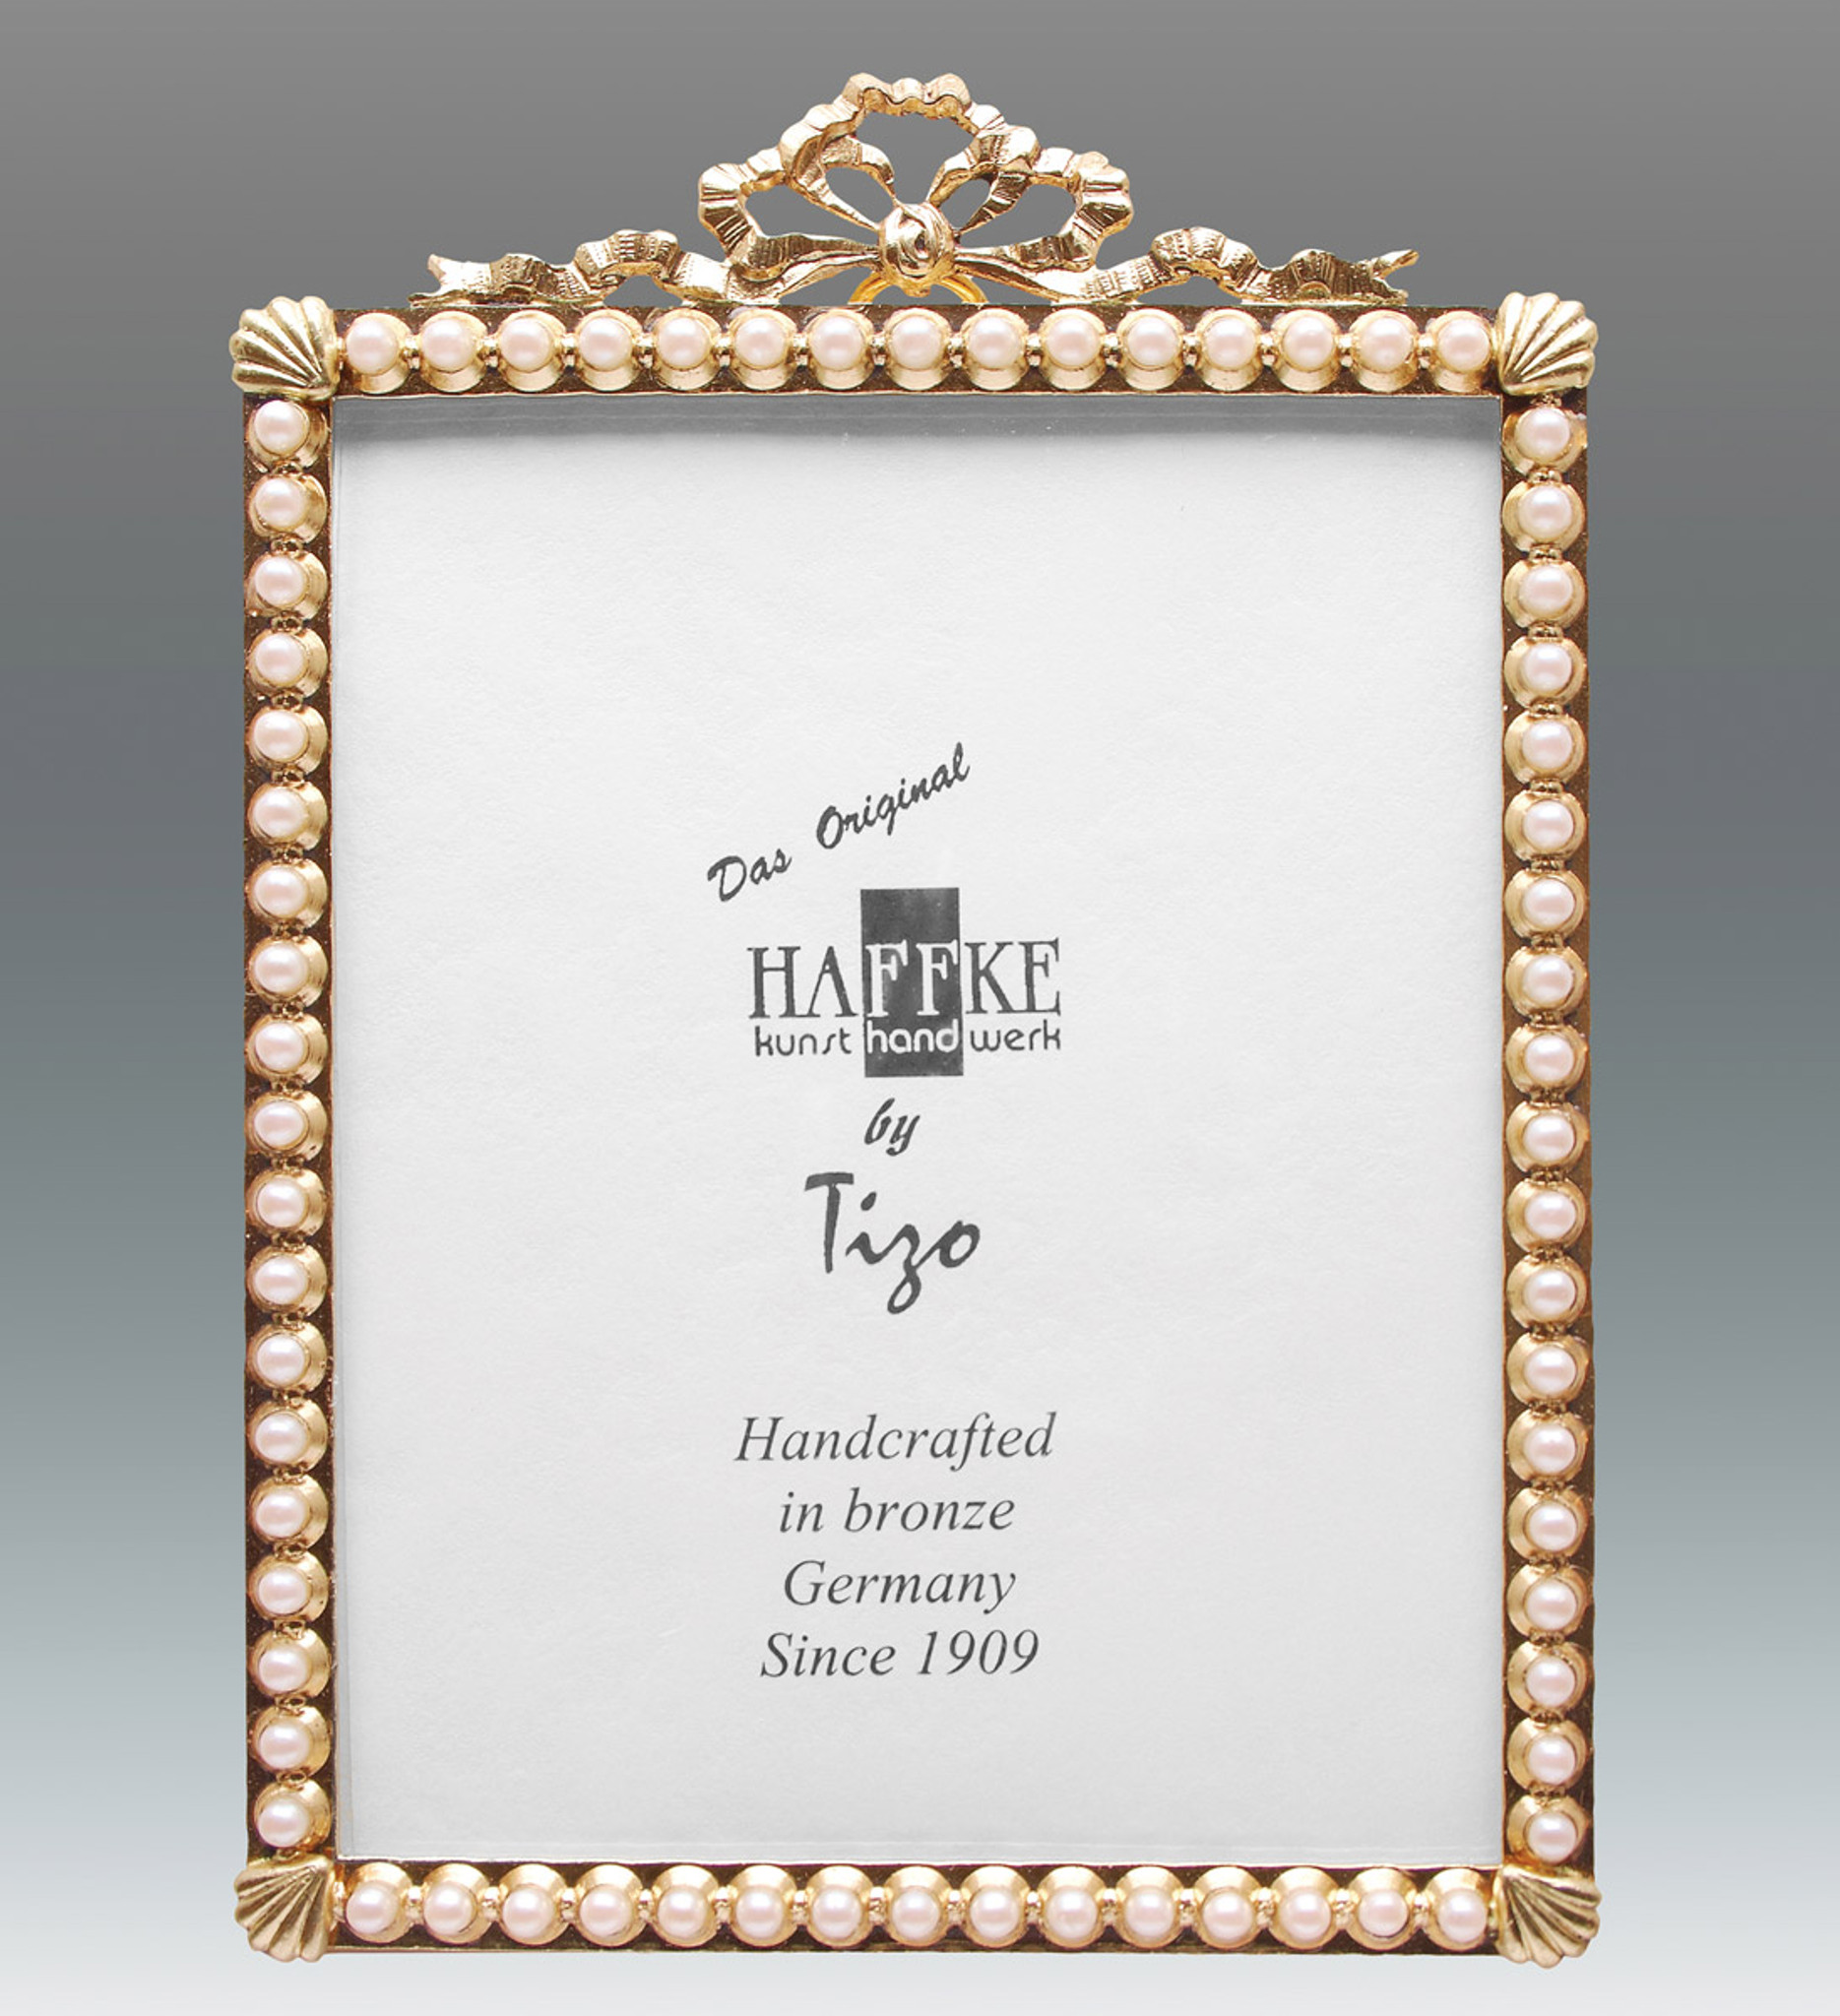 Haffke Bronze with Pearl Picture Frame 2.5 x 3.5 Inch - HomeBello